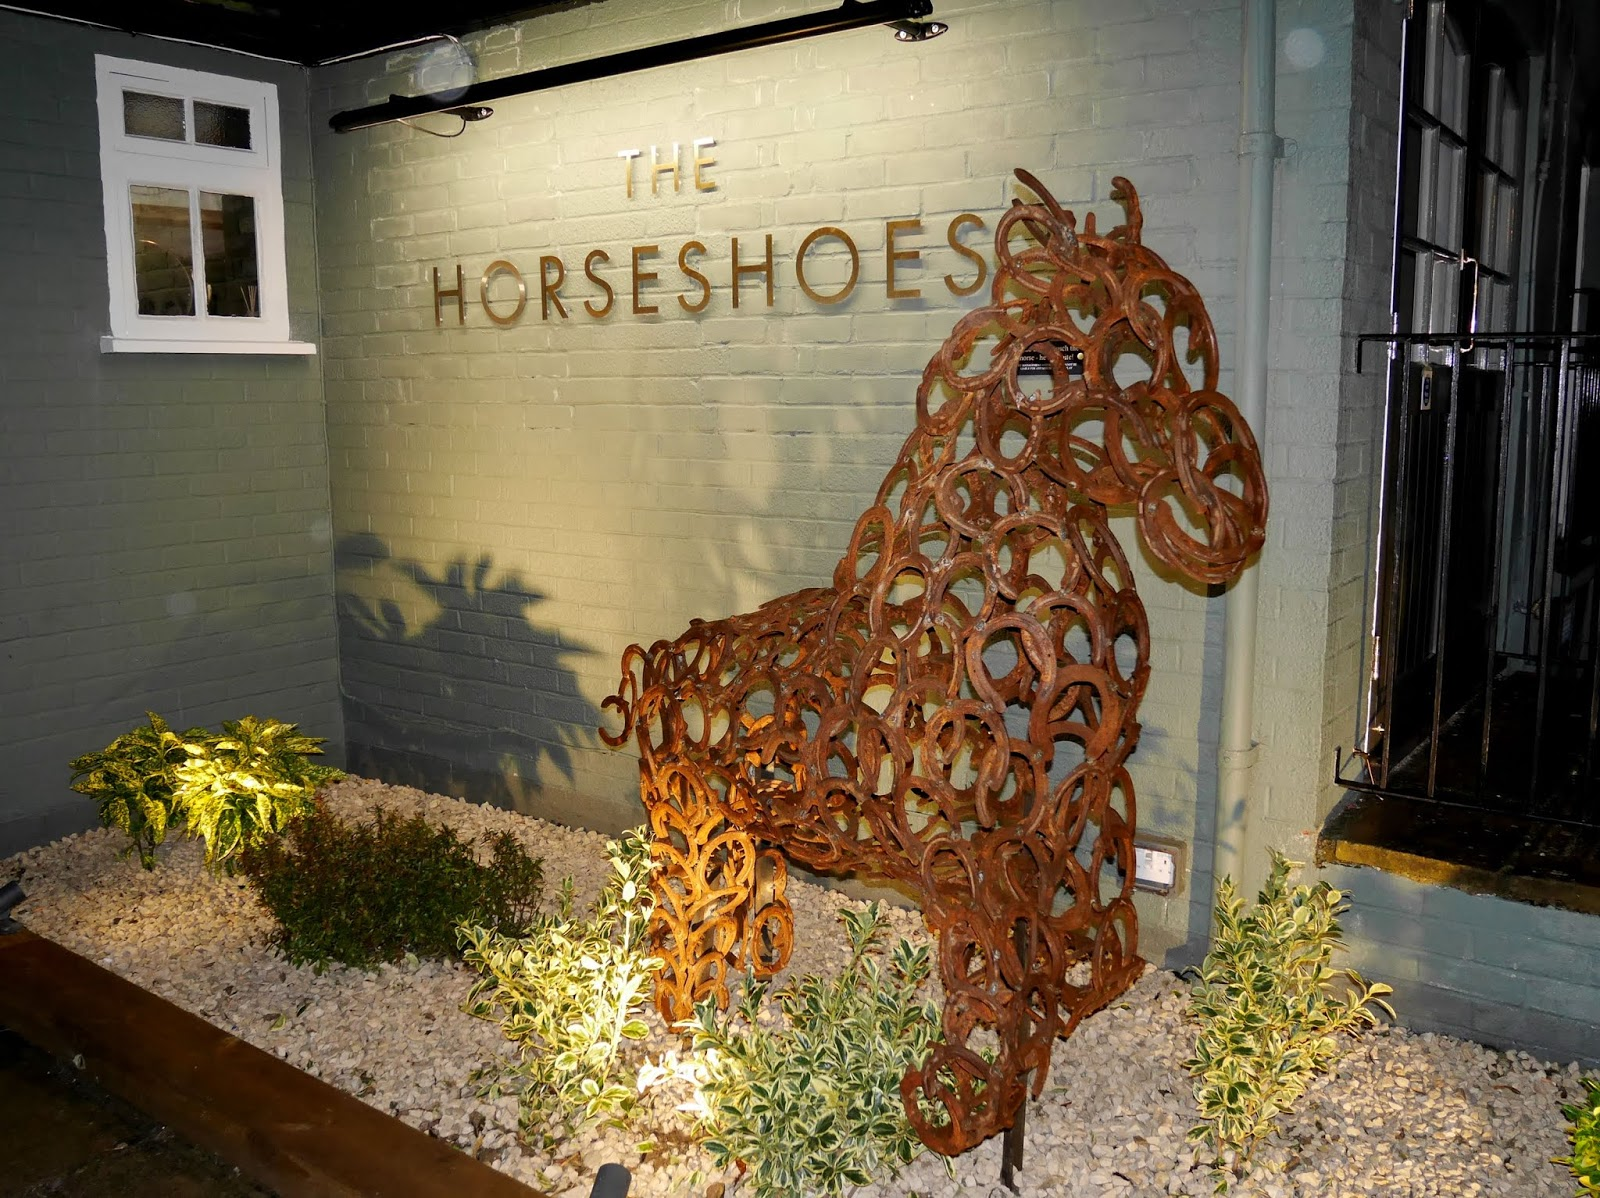 The Horseshoes pub and restaurant in East Farleigh, Kent